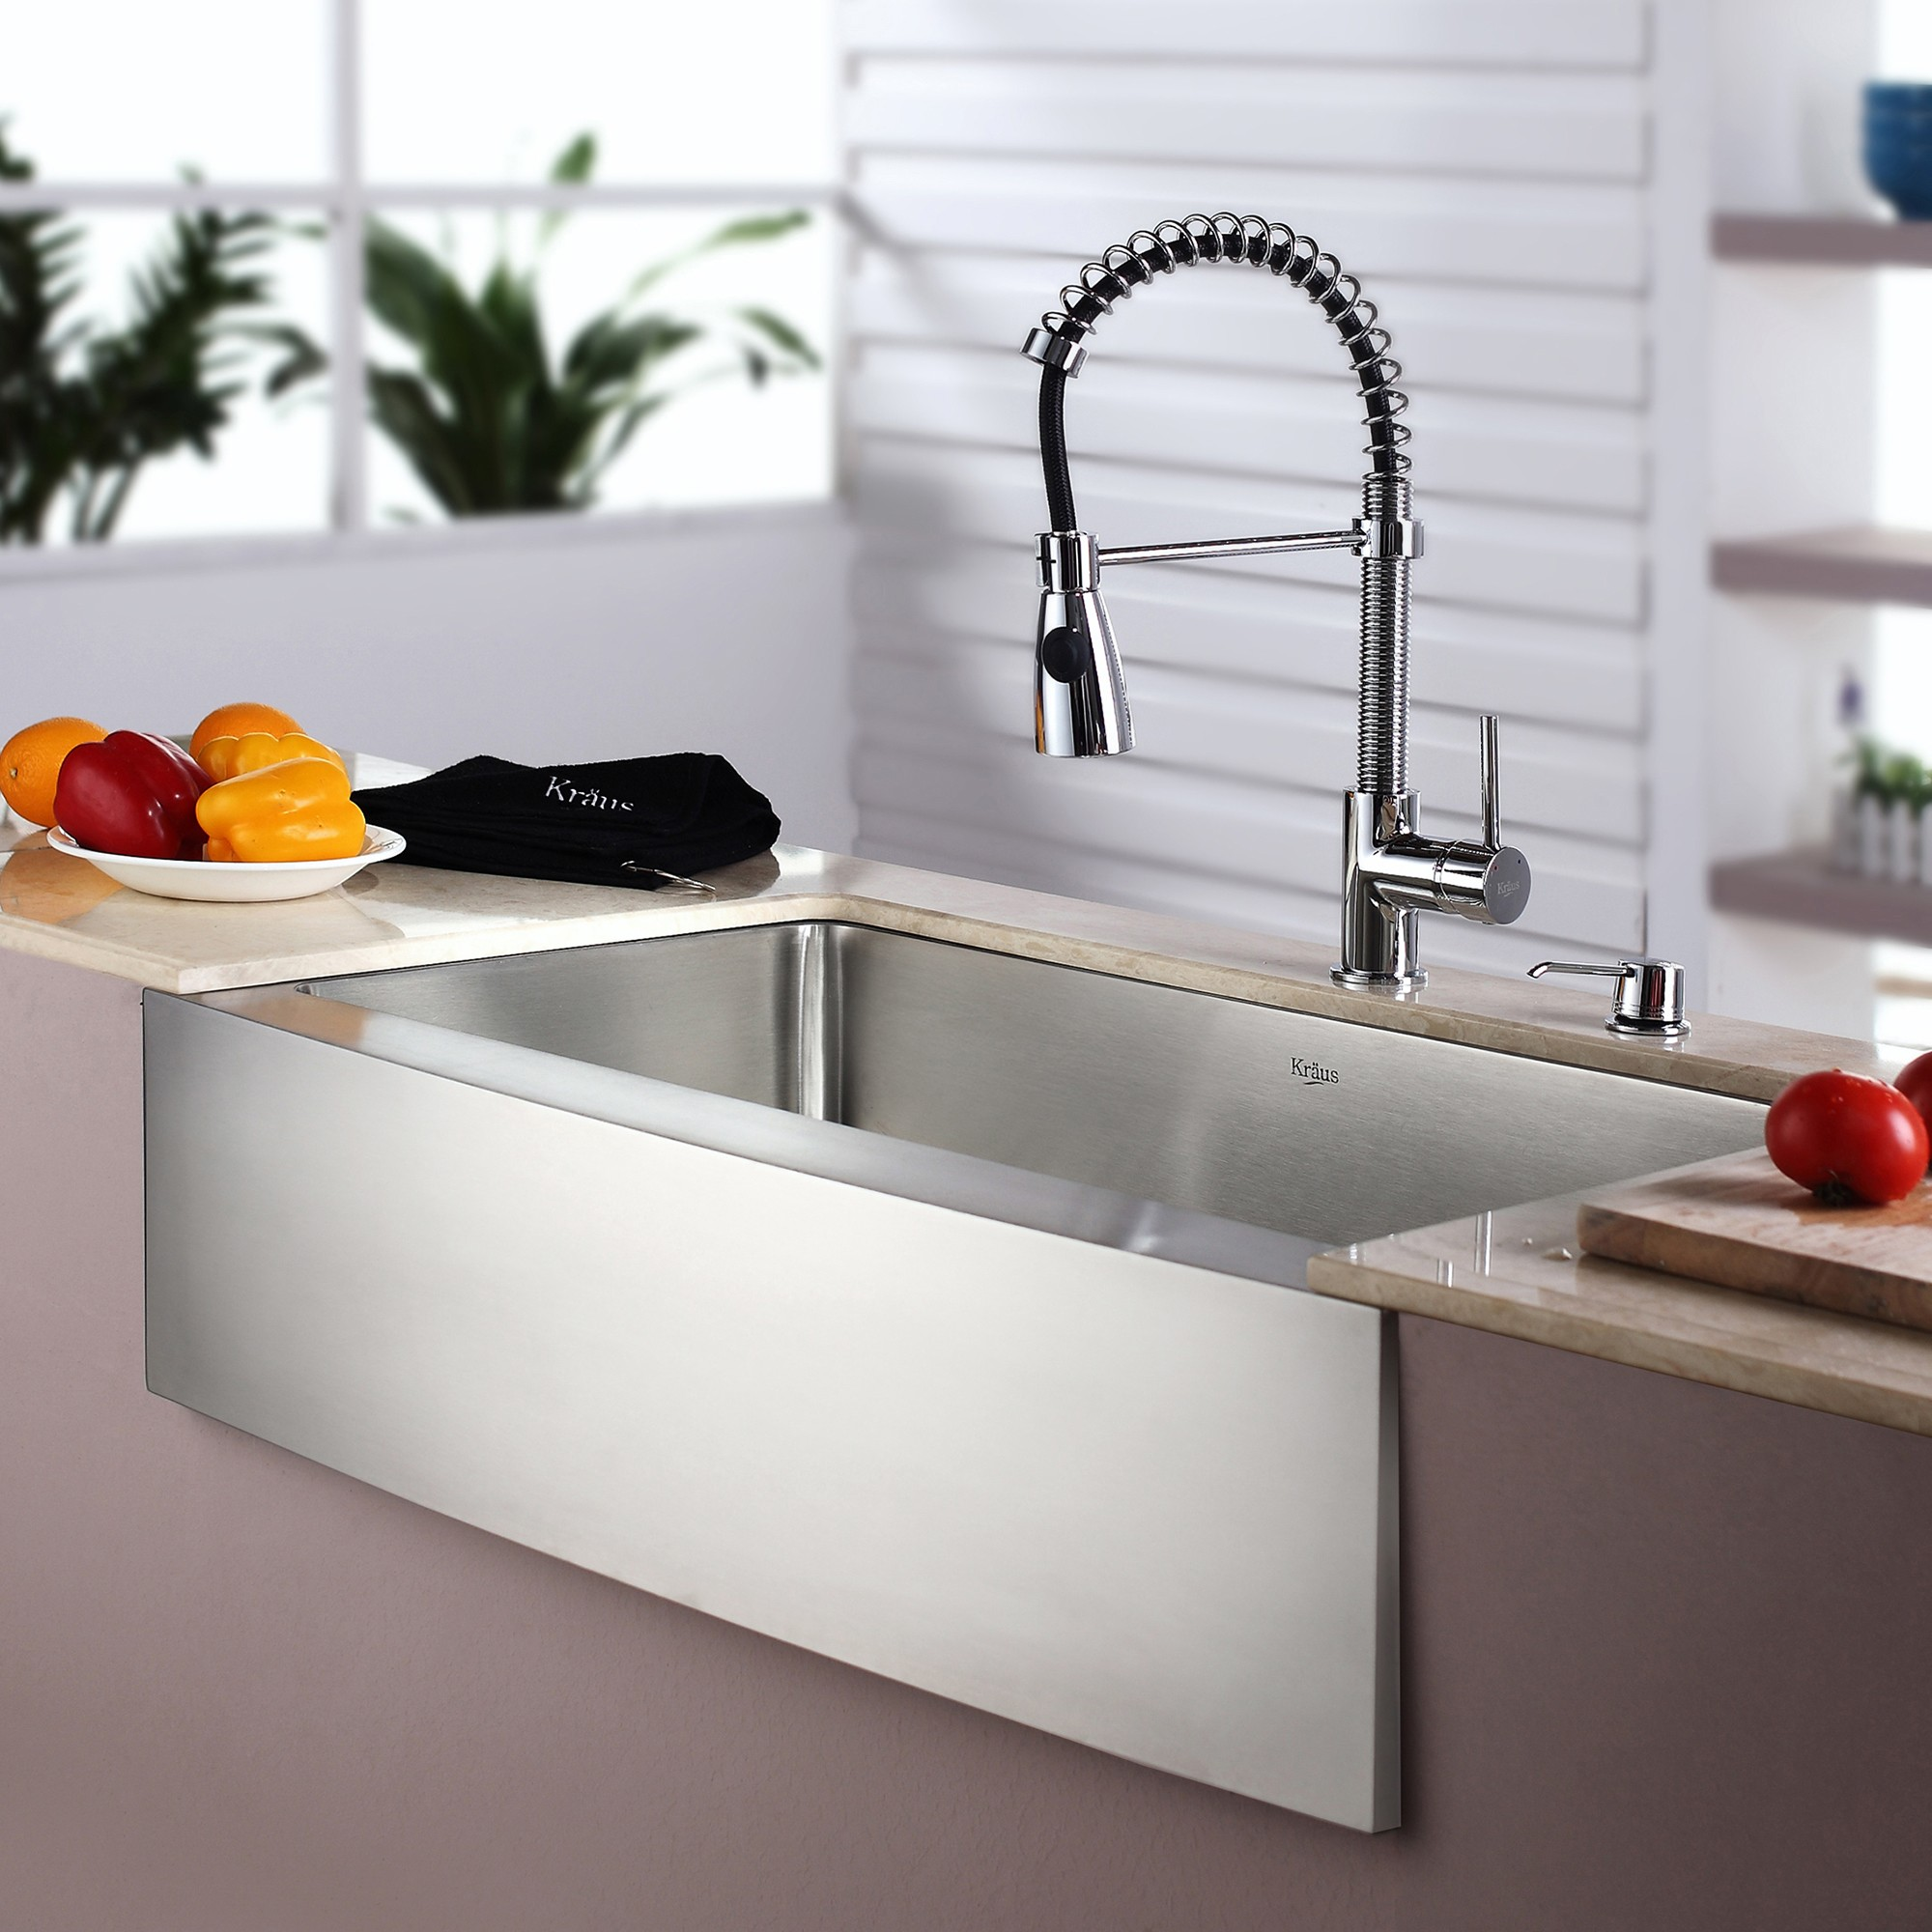 with menards down handle exciting for sale decoration pull faucet sink decor faucets and double kitchen bathroom ideas sprayer